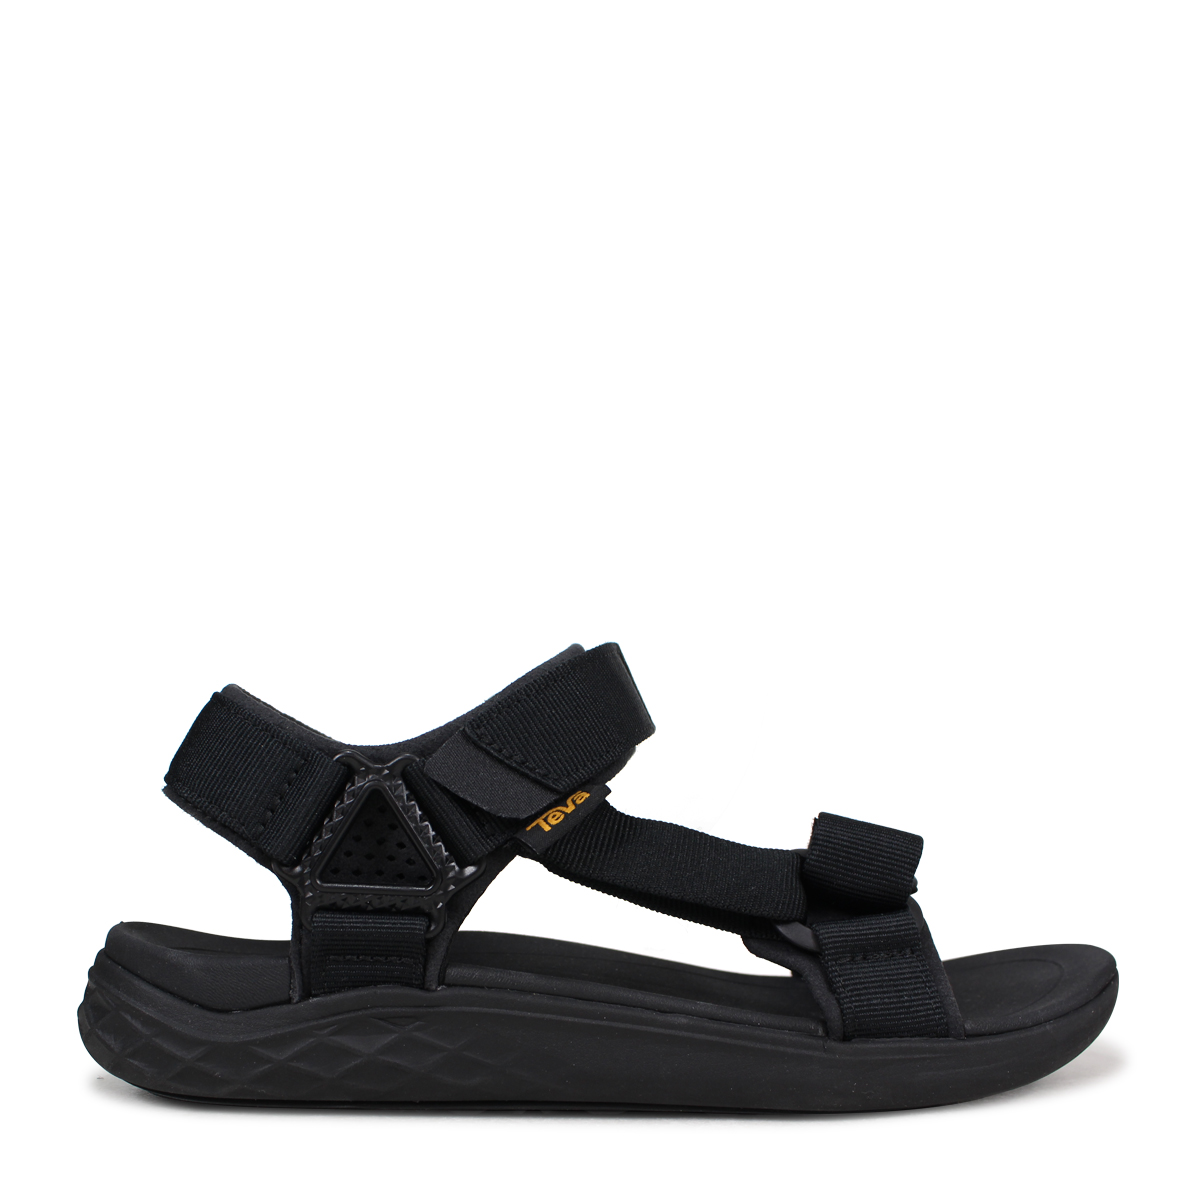 42f667ab7 Teva TERRA-FLOAT 2 UNIVERSAL Teva sandals men terra float 2 universal black  1091349  4 18 Shinnyu load   184